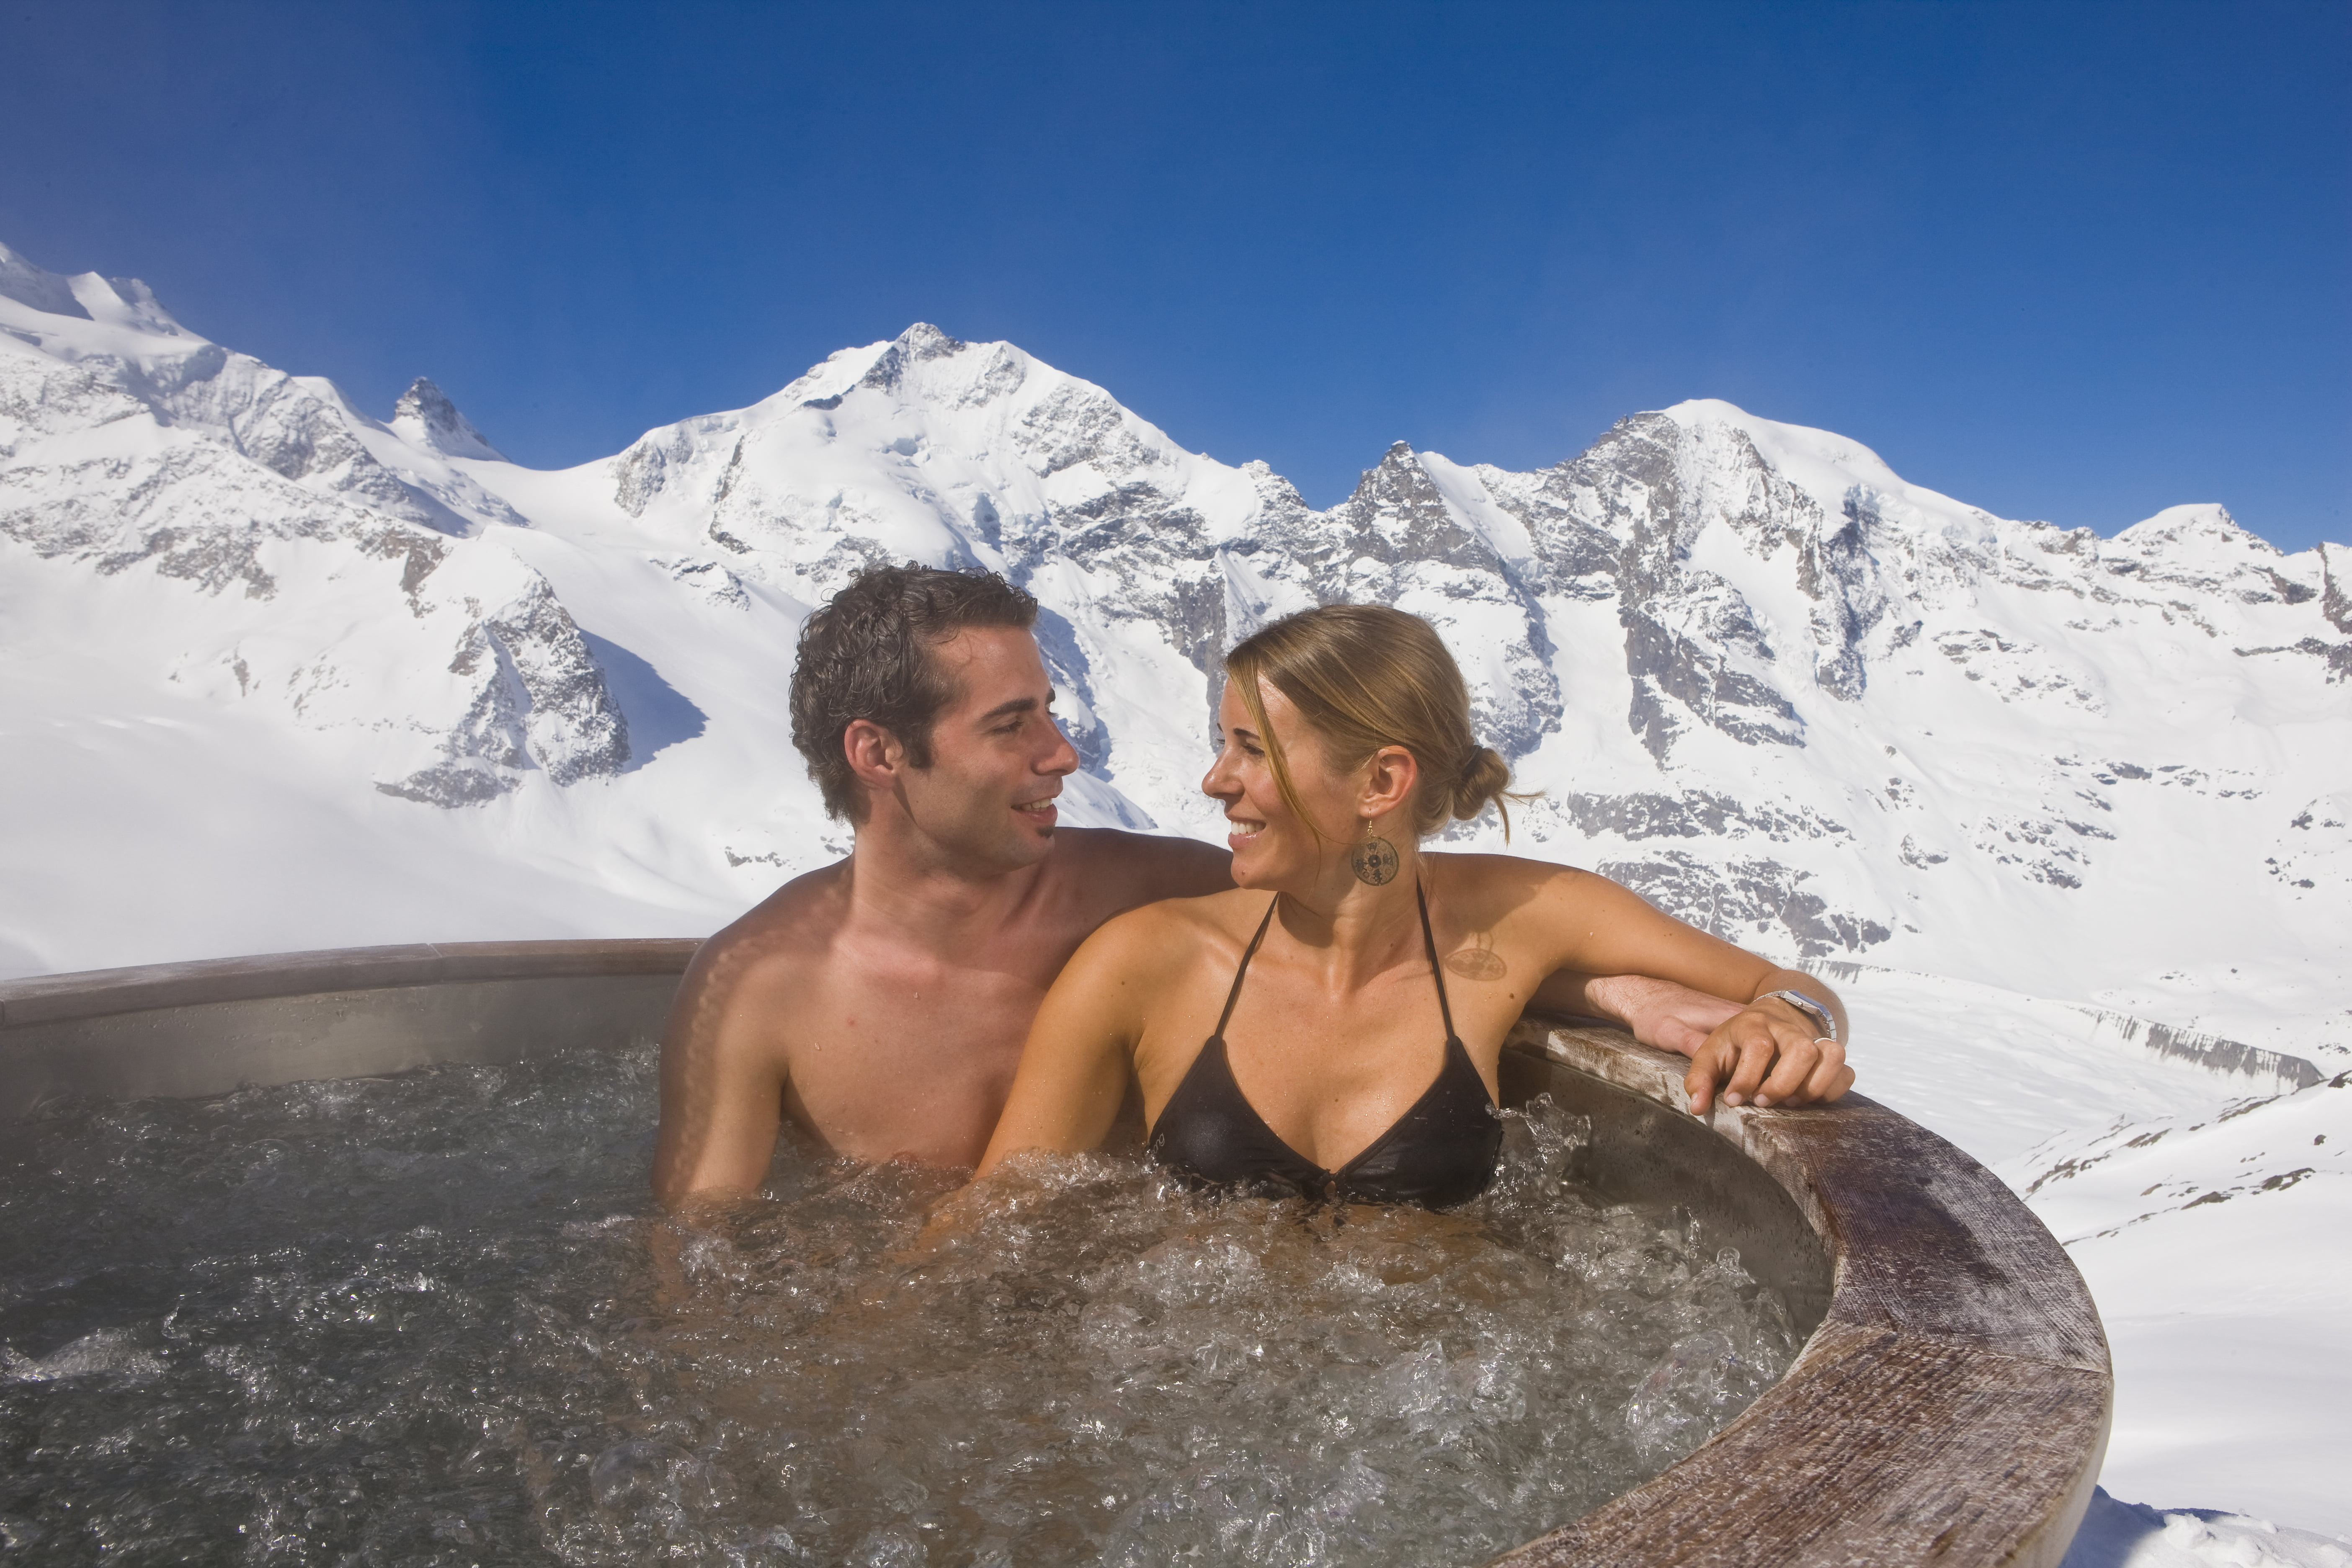 Diavolezza jacuzzi bath at 3,000m.